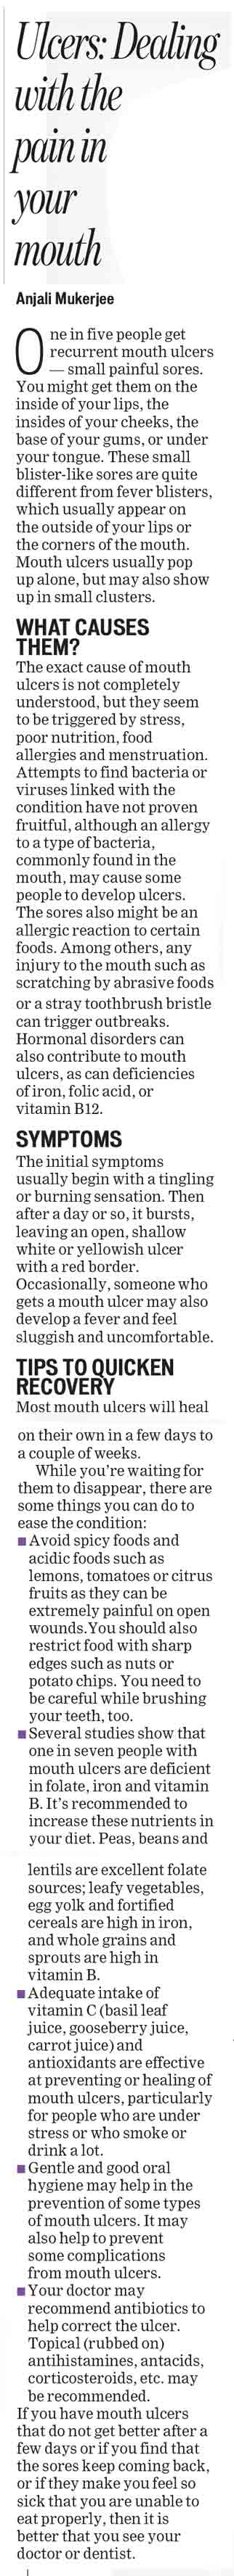 Ulcers: Dealing with the pain in your mouth